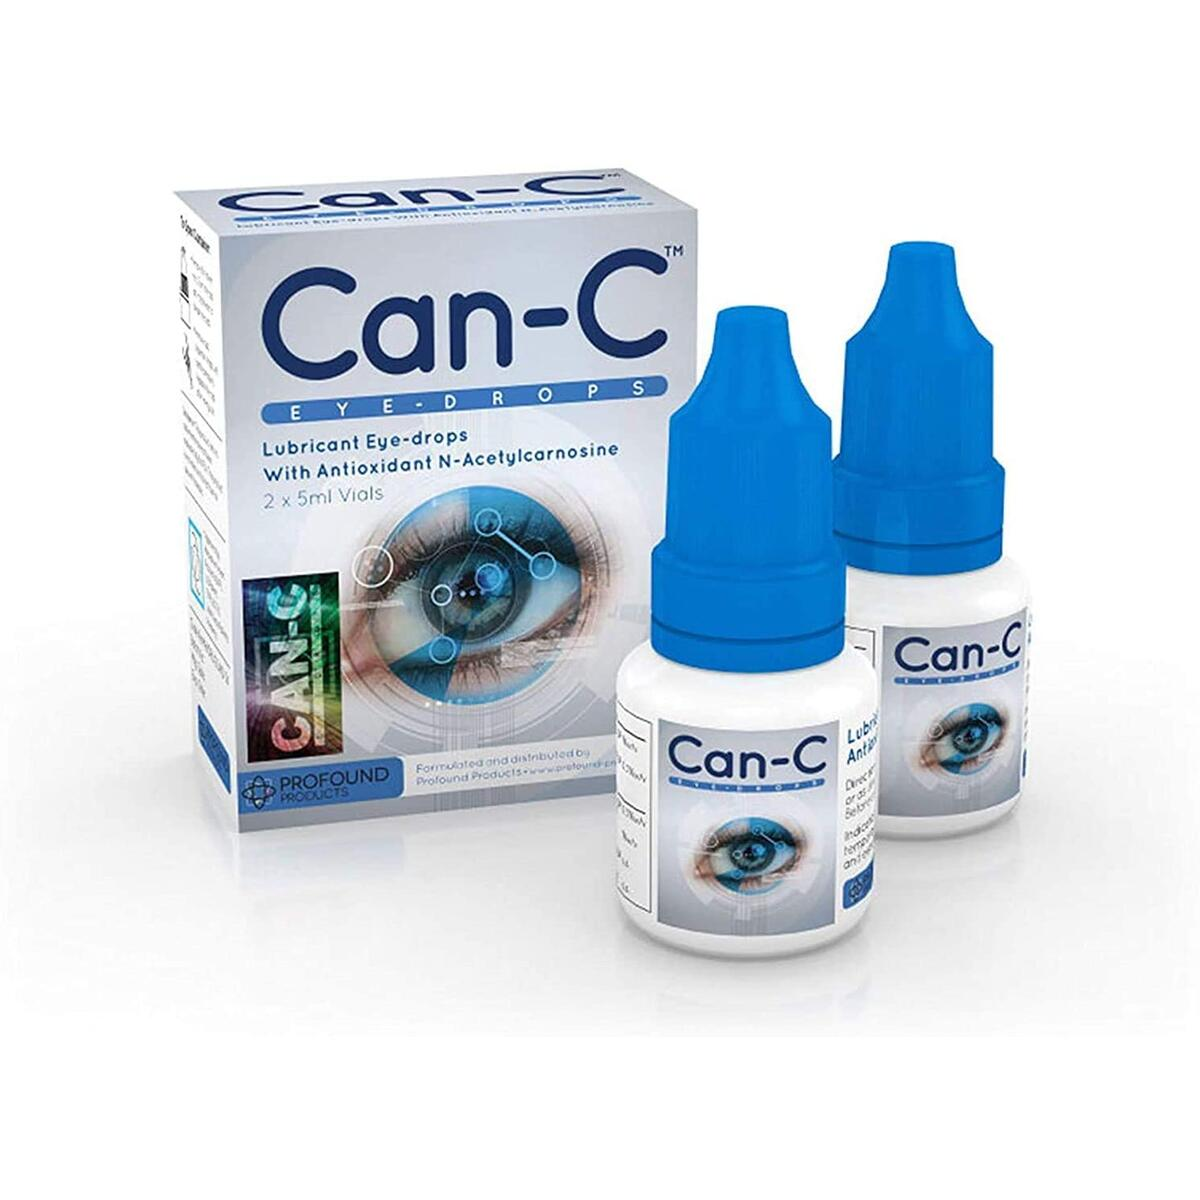 Can-C Lubricant Eye Drops with Antioxidant N-Acetylcarnosine | Effective Solution for Cataracts and Dry Eyes | Natural Eyedrop Ointment Also Includes a Microfiber Multipurpose Cleaning Cloth